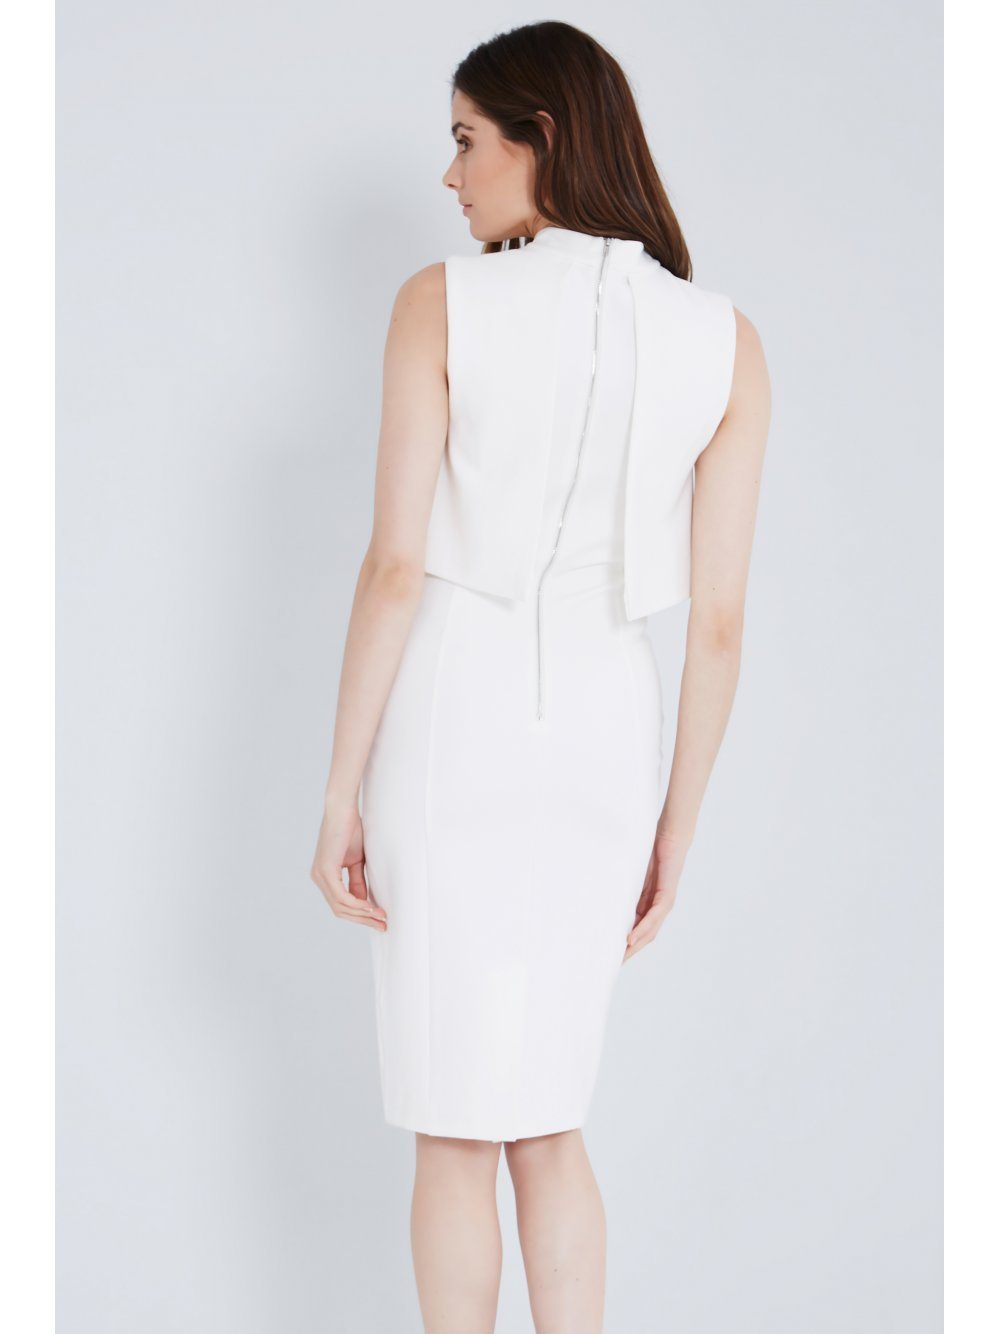 White High Neck Cropped Midi Dress (Brooke Hogan)